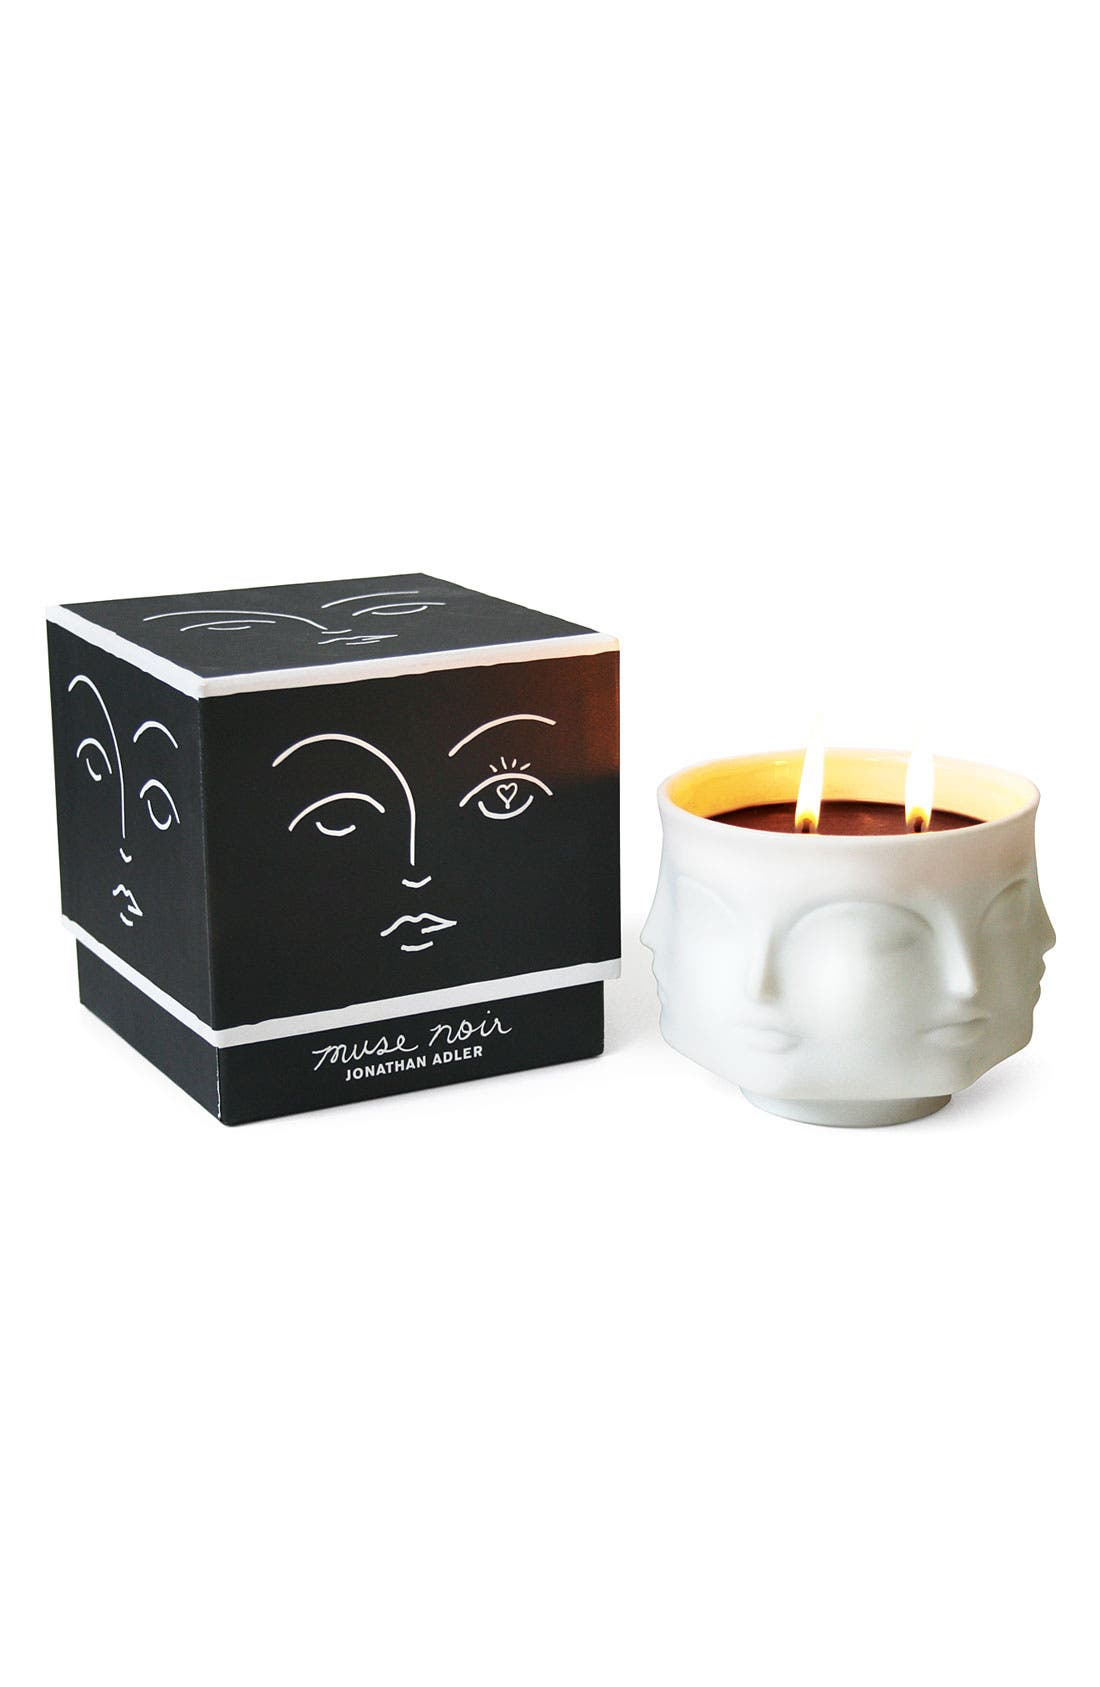 Alternate Image 1 Selected - Jonathan Adler 'Muse' Candle